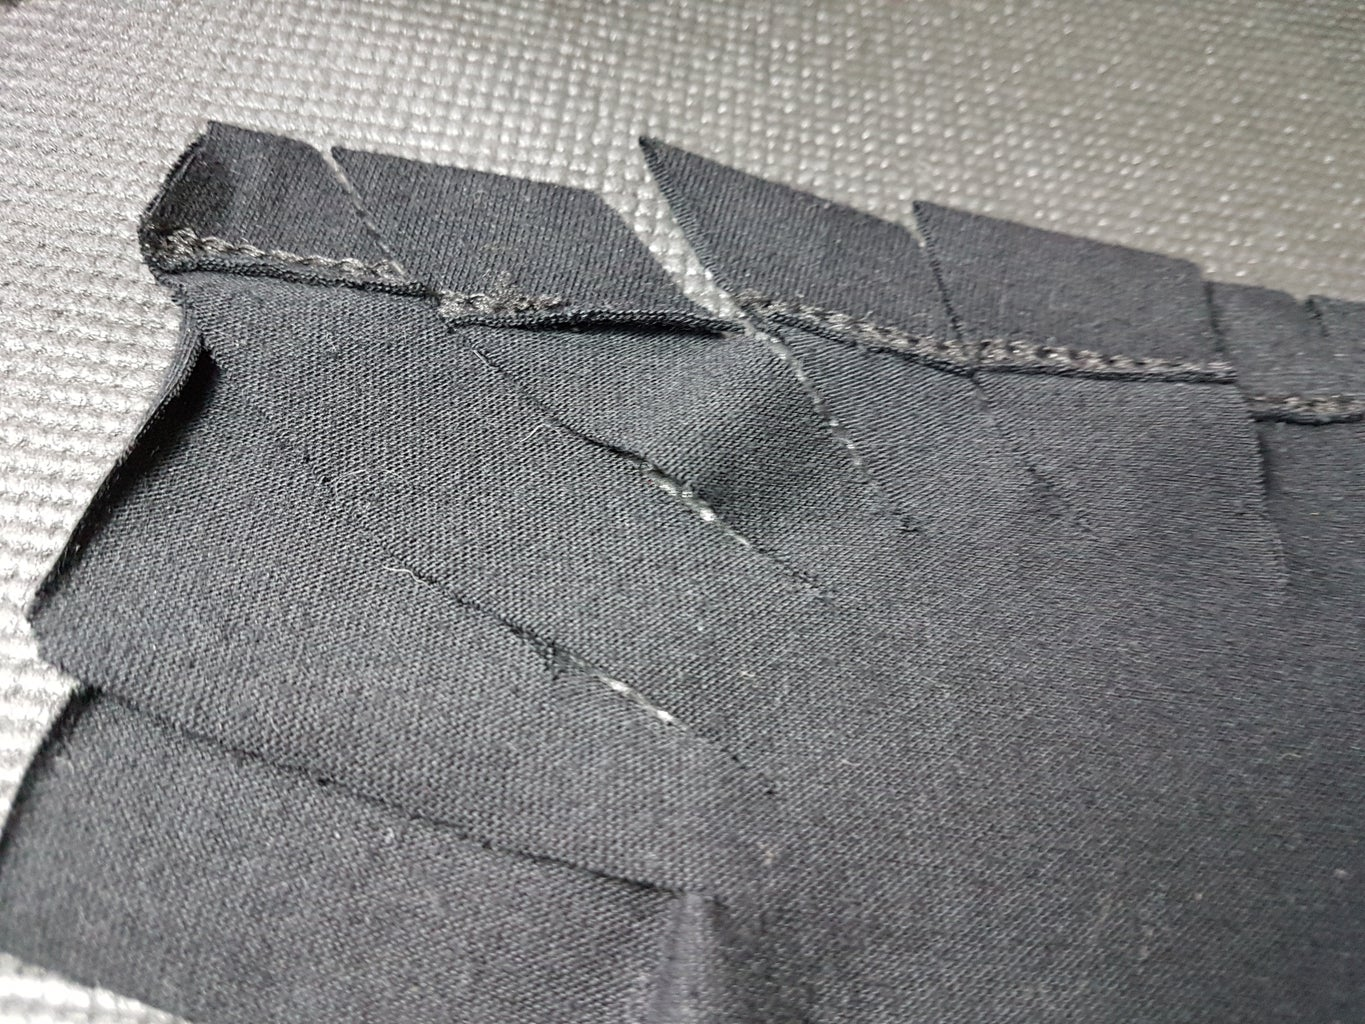 CUTTING THE EDGE OF THE SHIRT